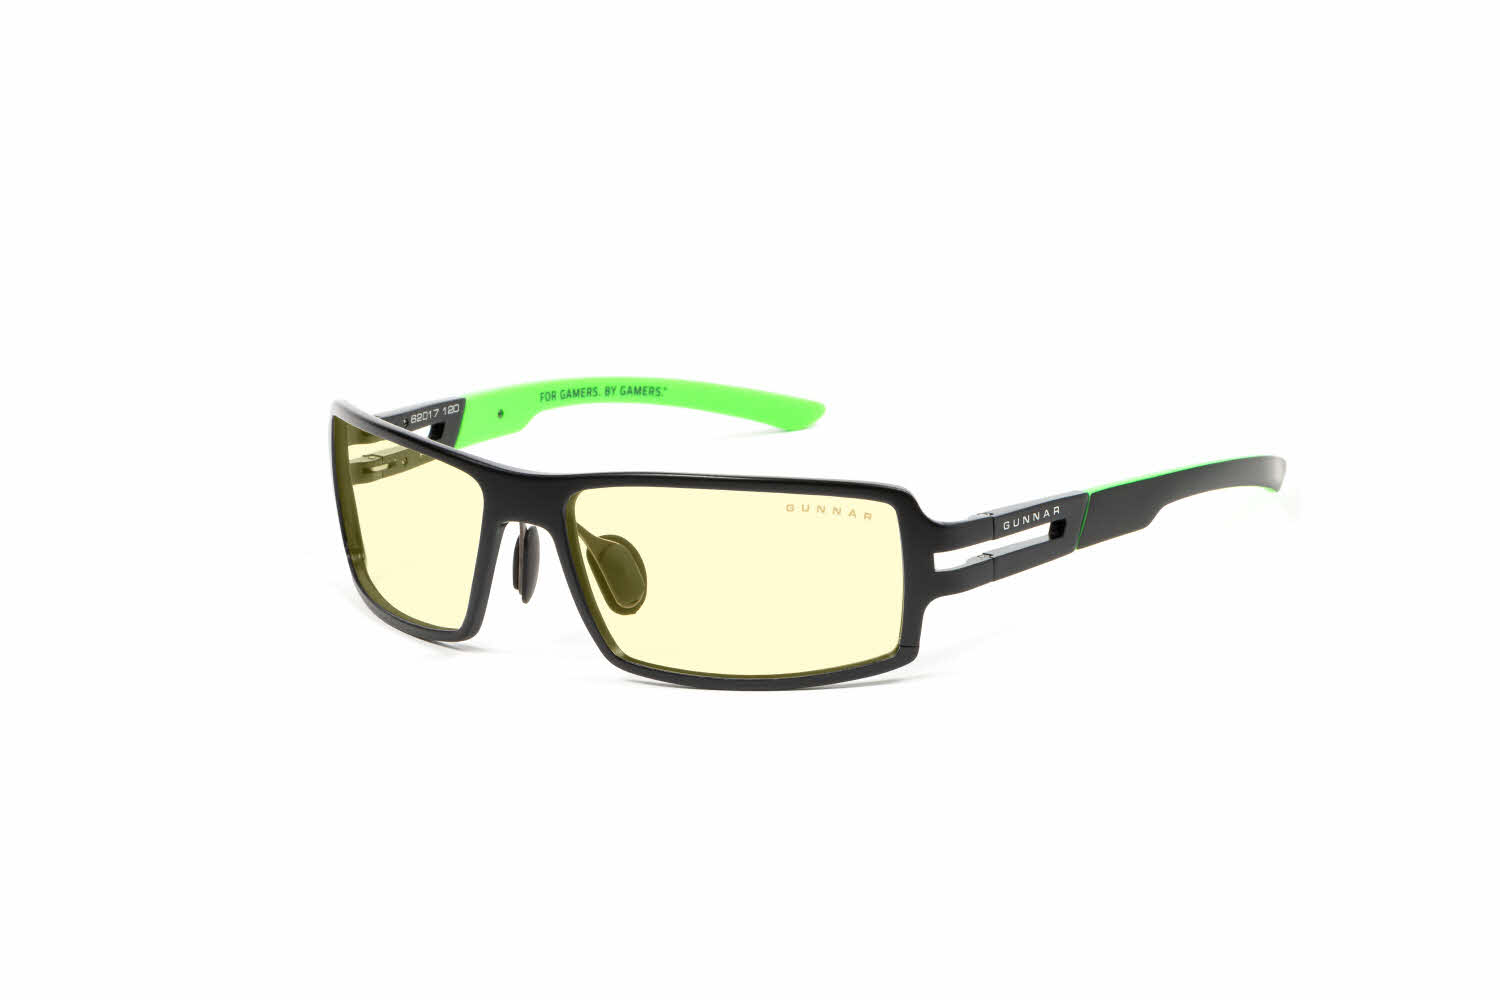 Gunnar RPG by Razer Prescription Sunglasses